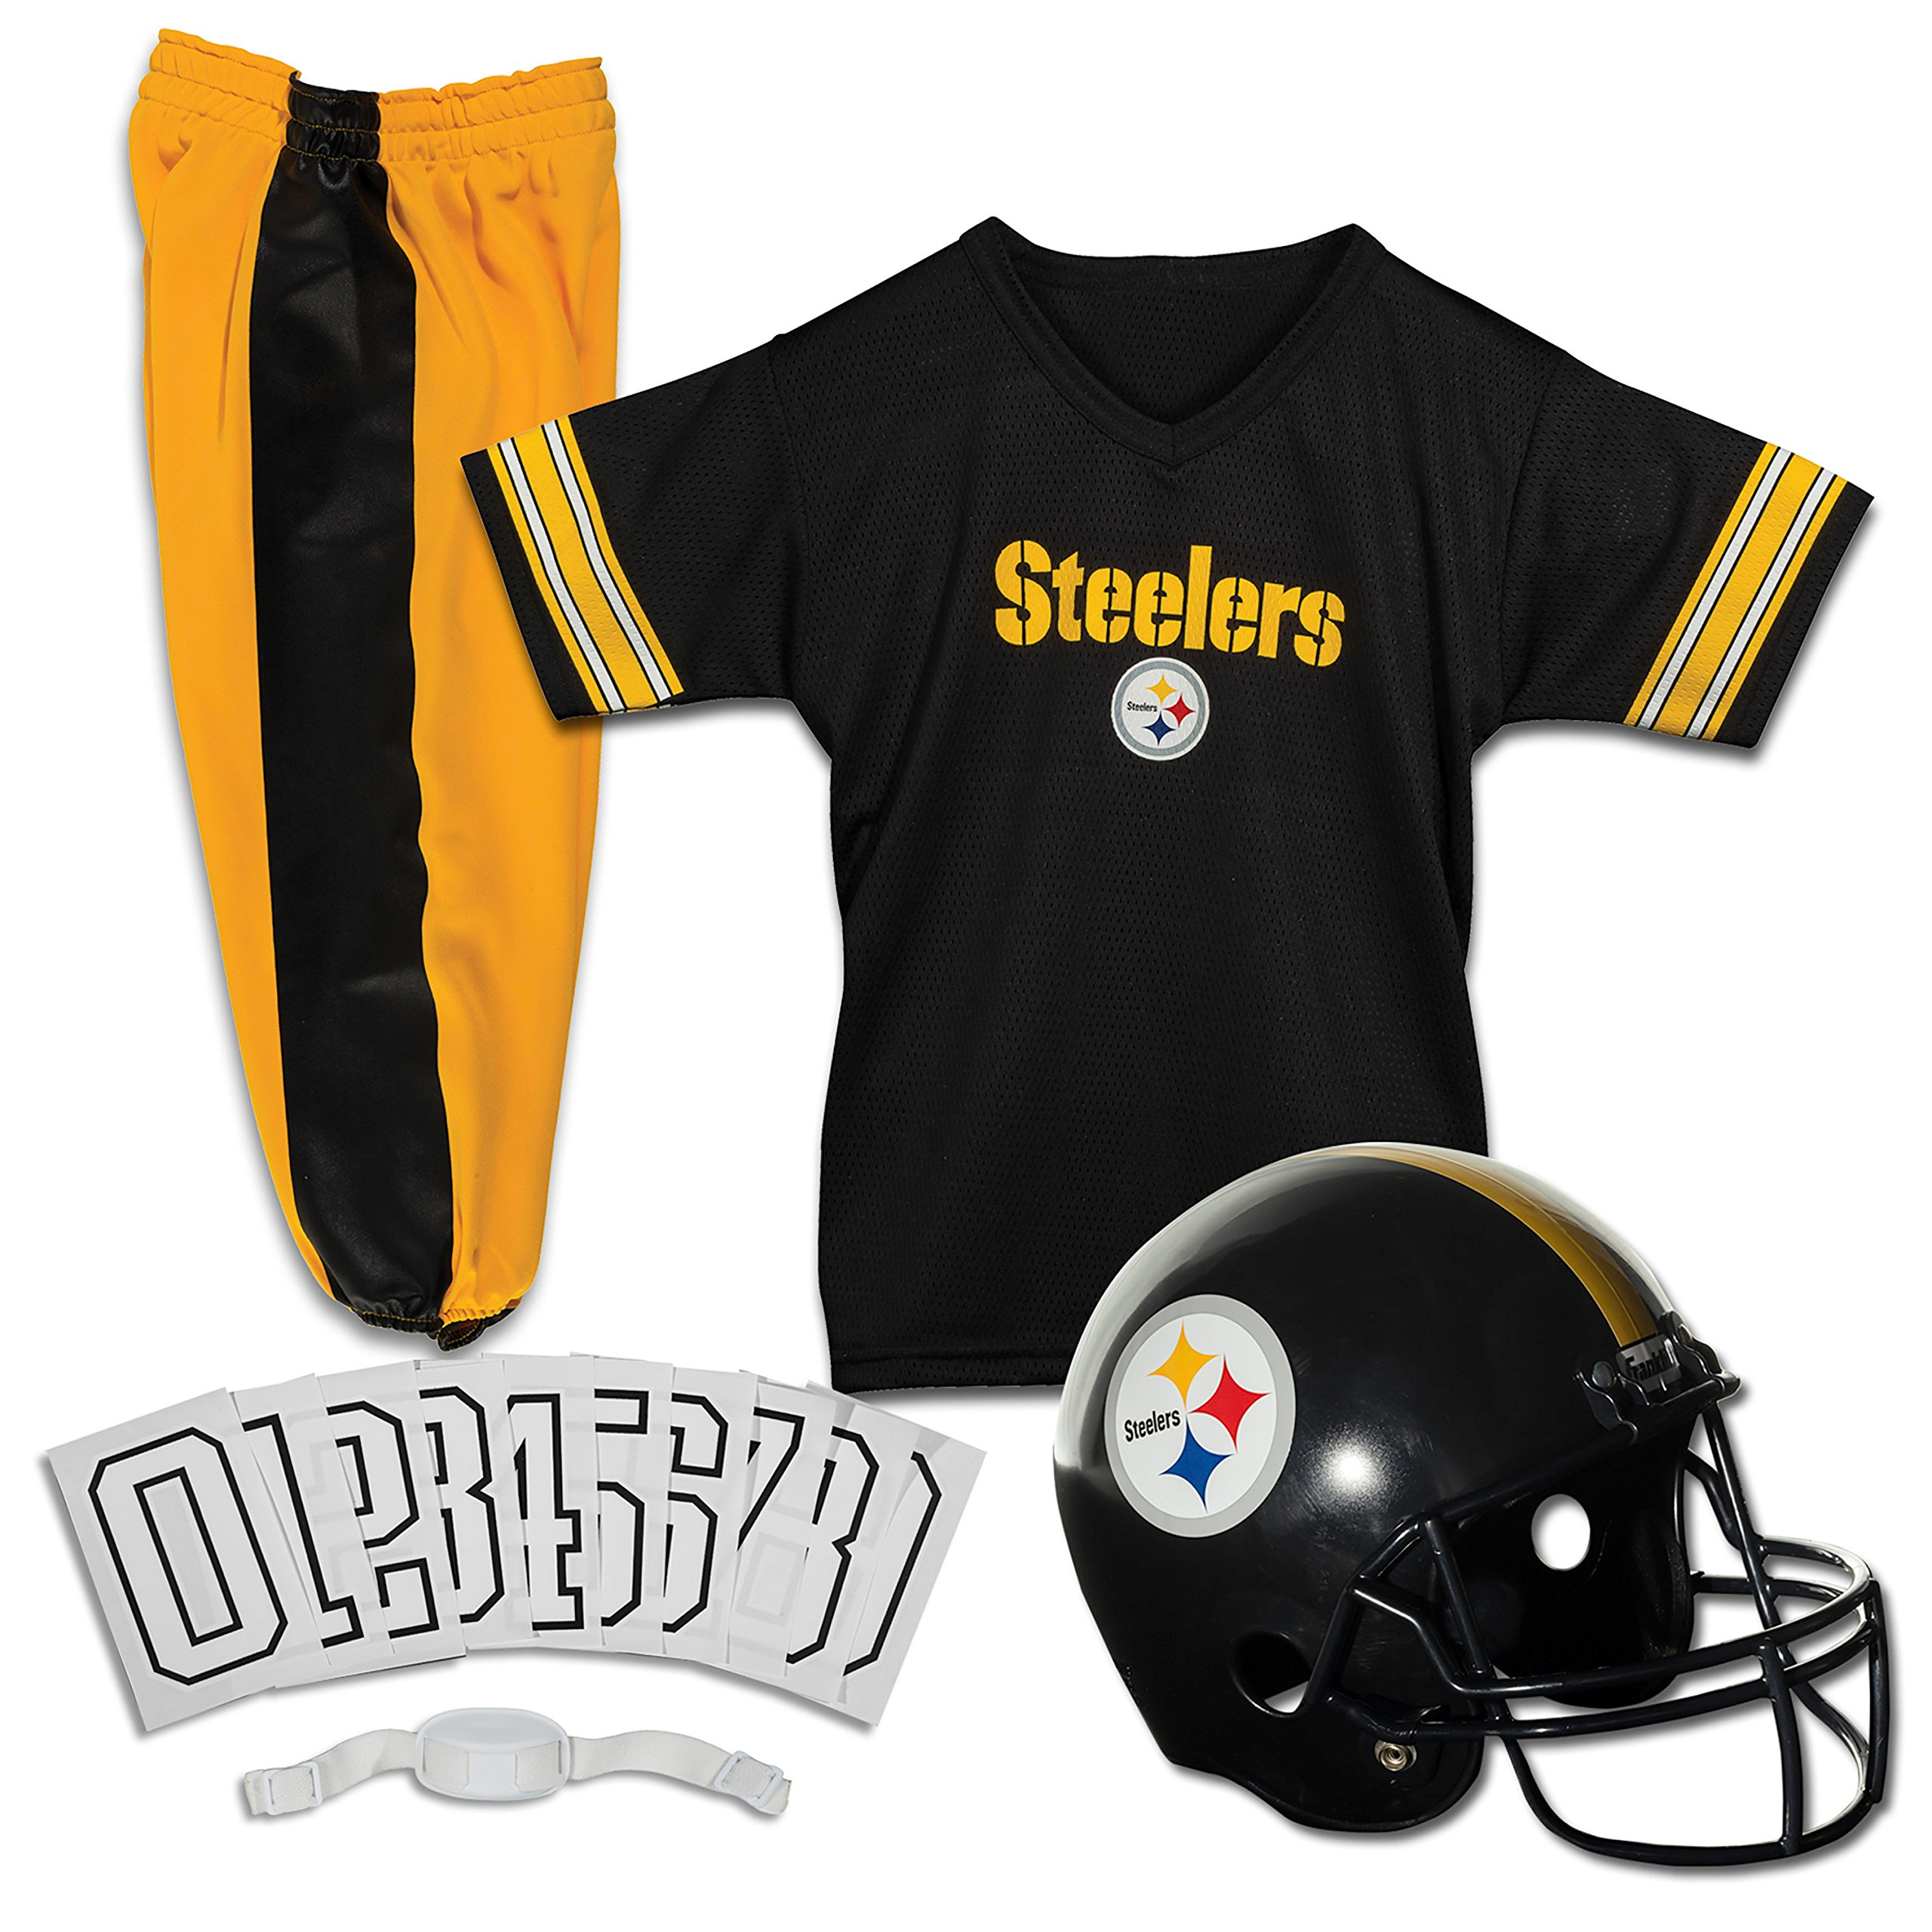 Franklin Sports Deluxe NFL-Style Youth Uniform - NFL Kids Helmet, Jersey, Pants, Chinstrap and Iron on Numbers Included - Football Costume for Boys and Girls by Franklin Sports (Image #1)